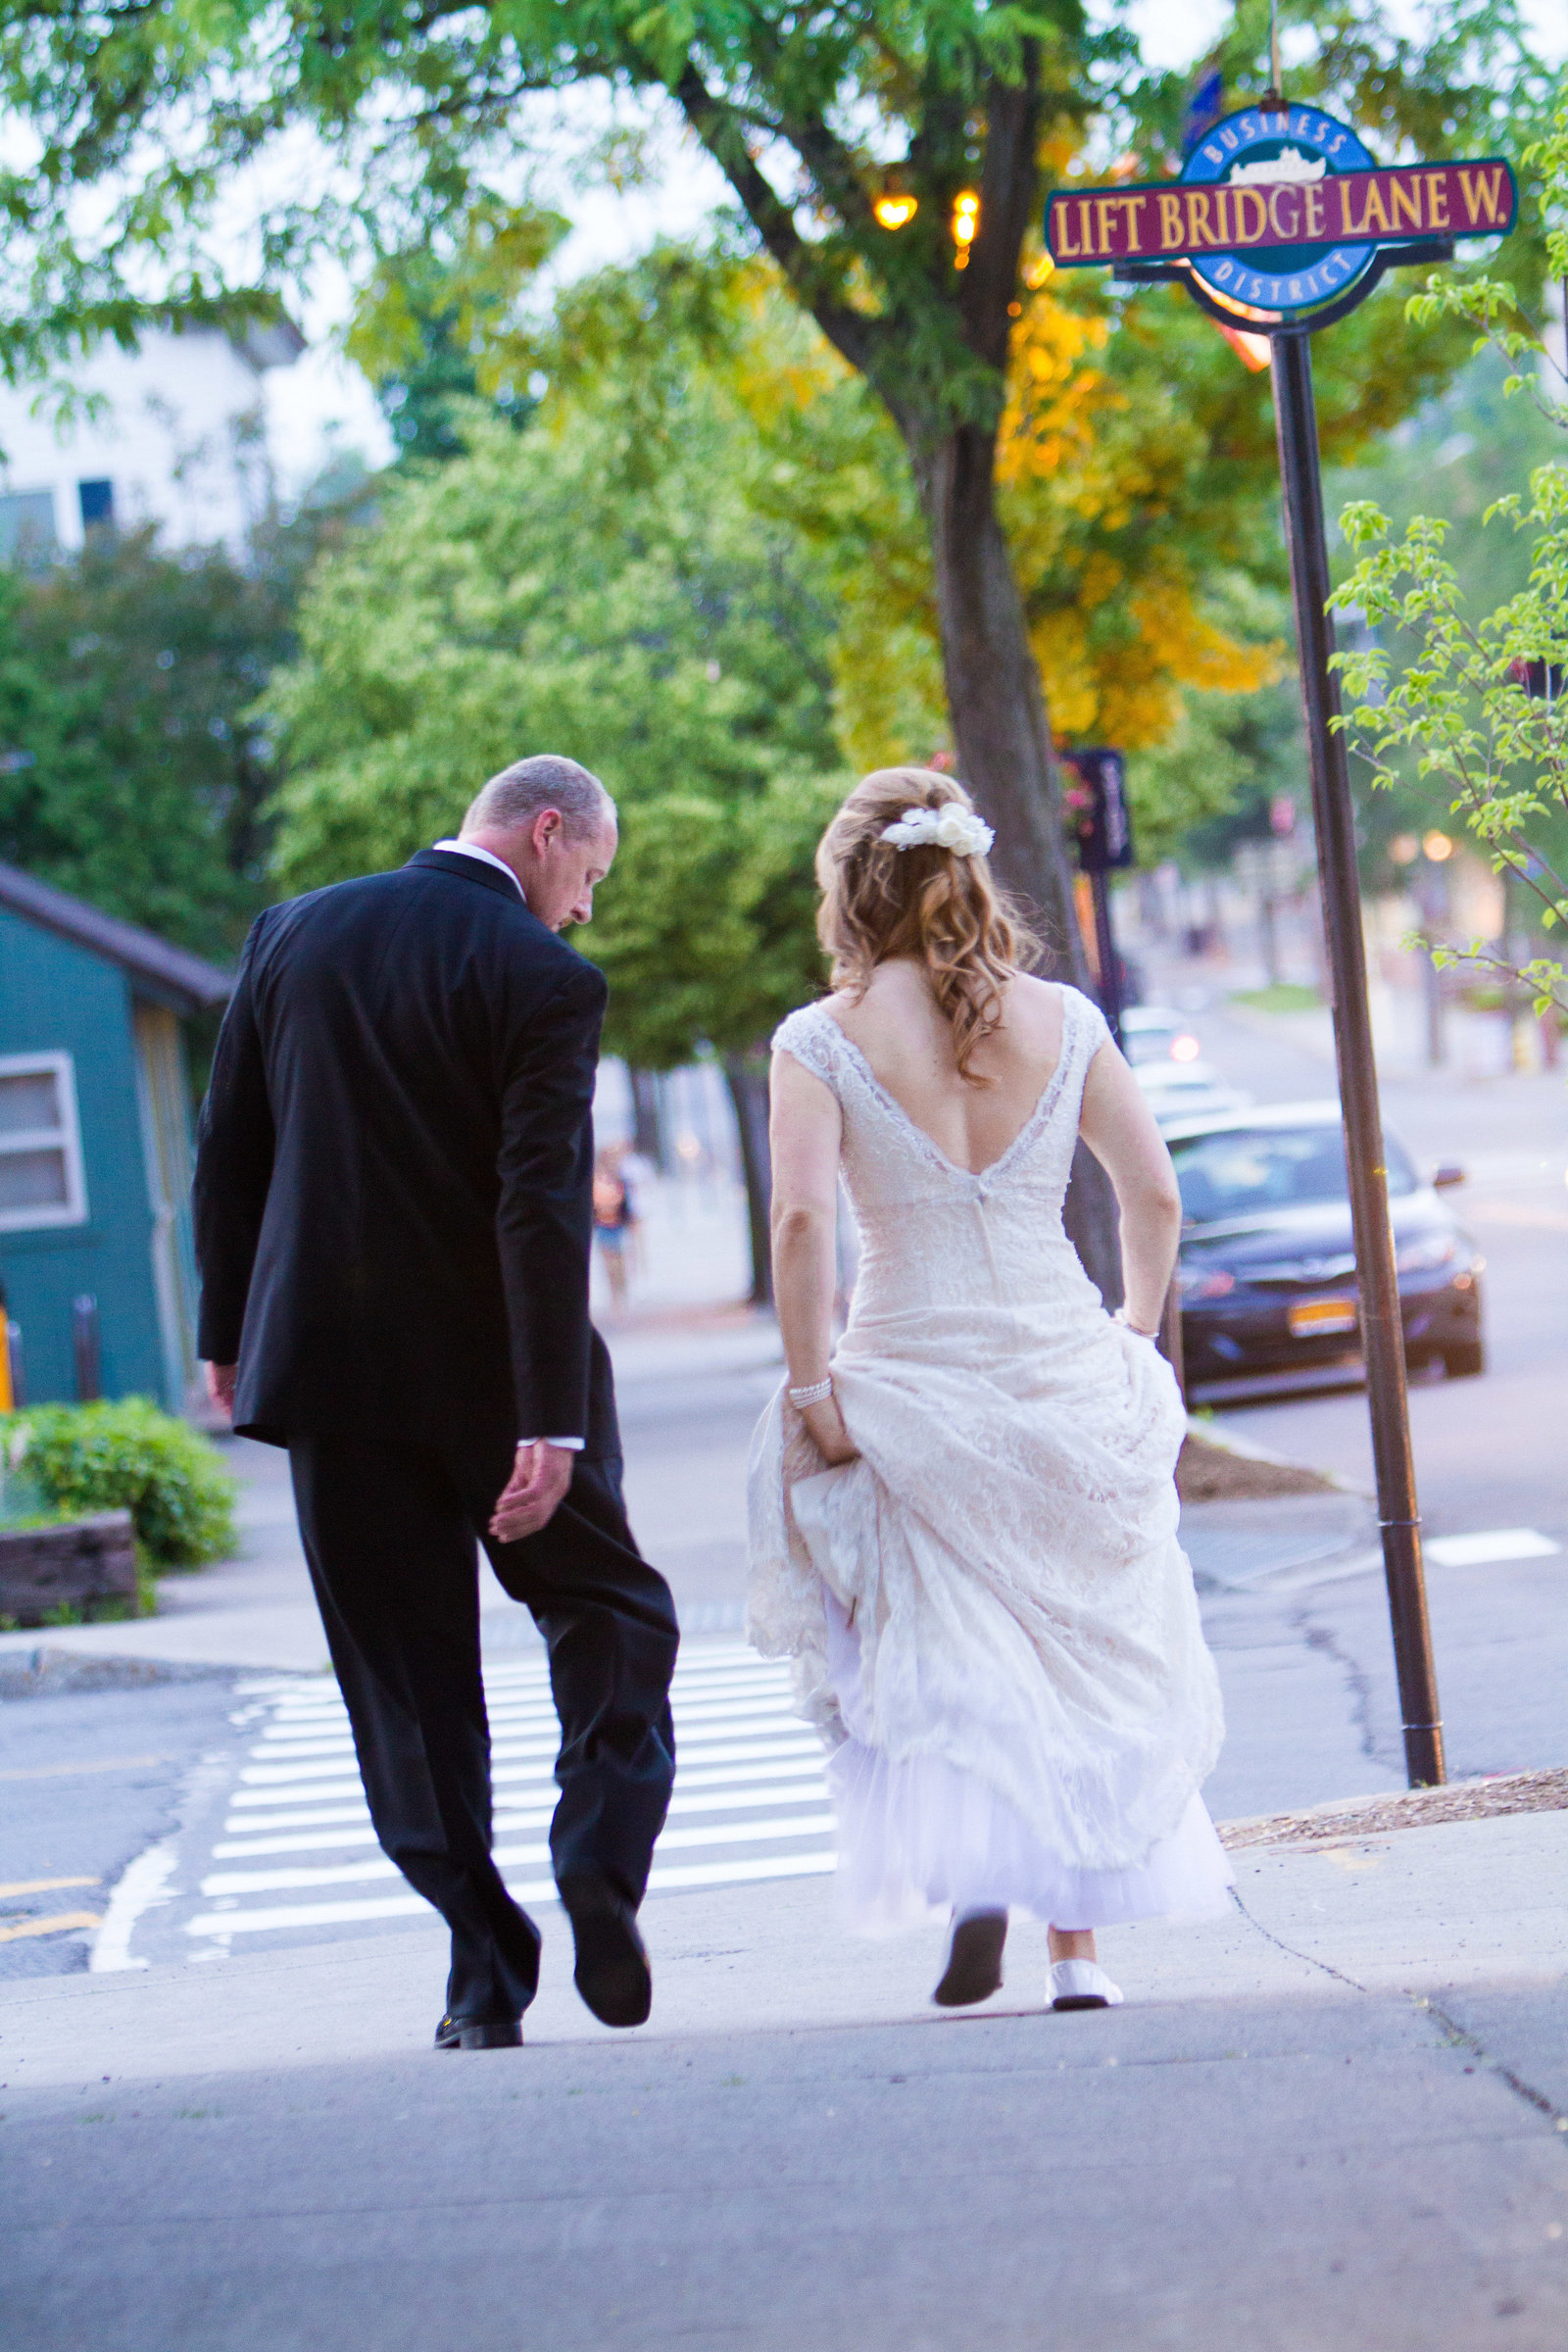 wedding photography bride and groom walking on street